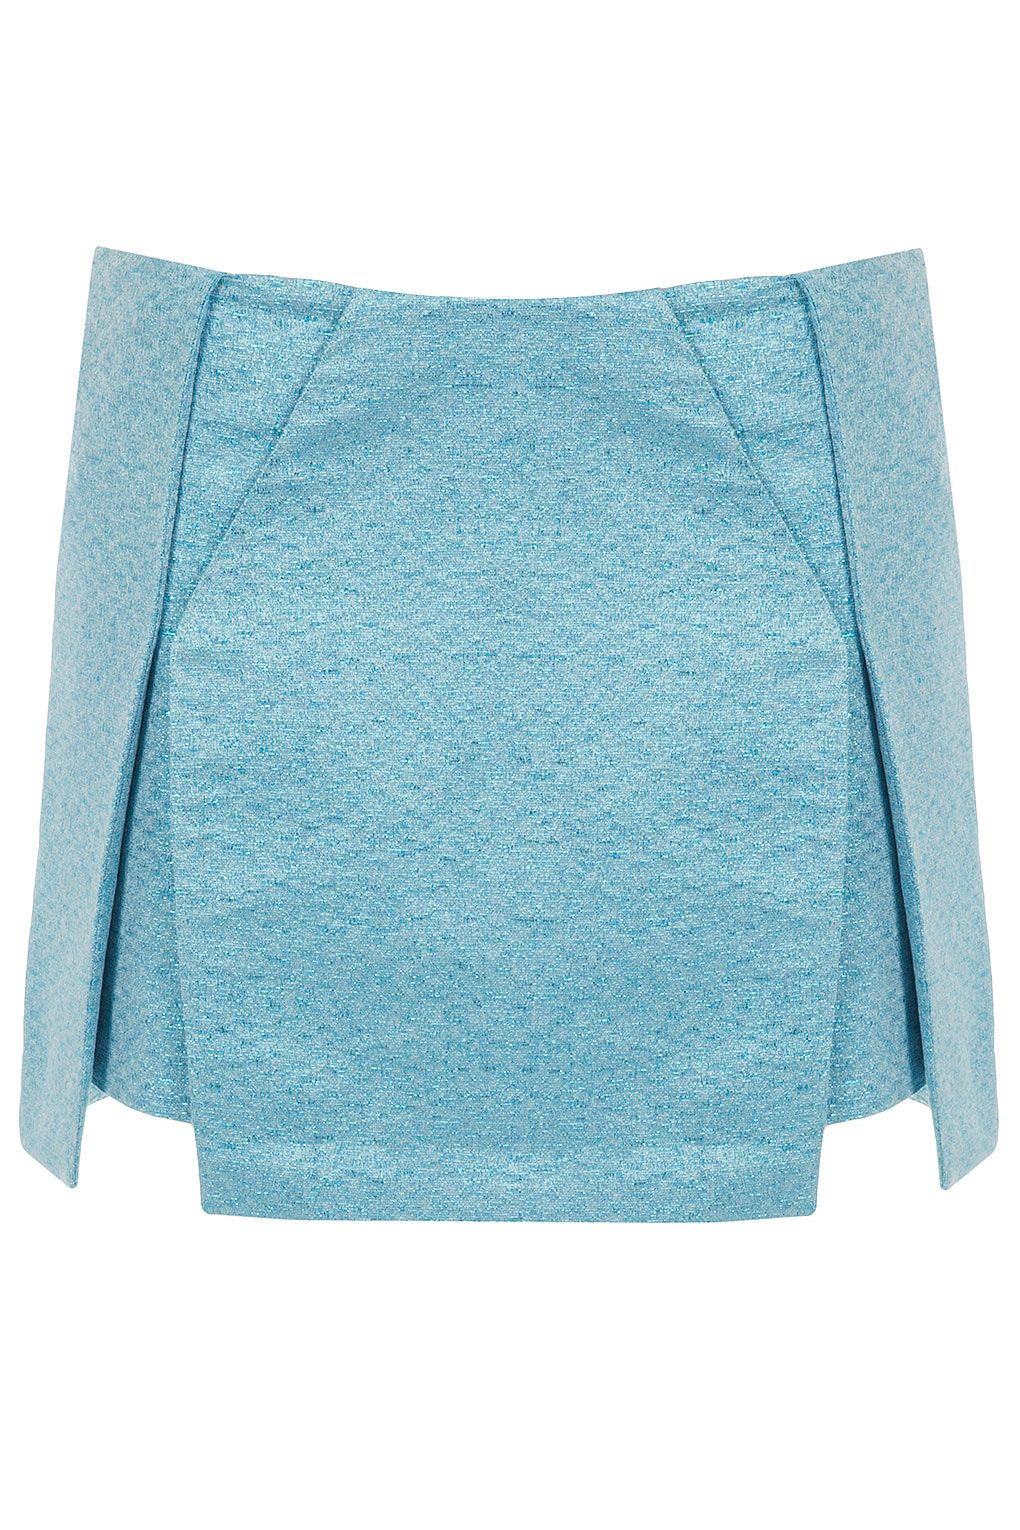 Baby blue metallic origami skirt from Topshop